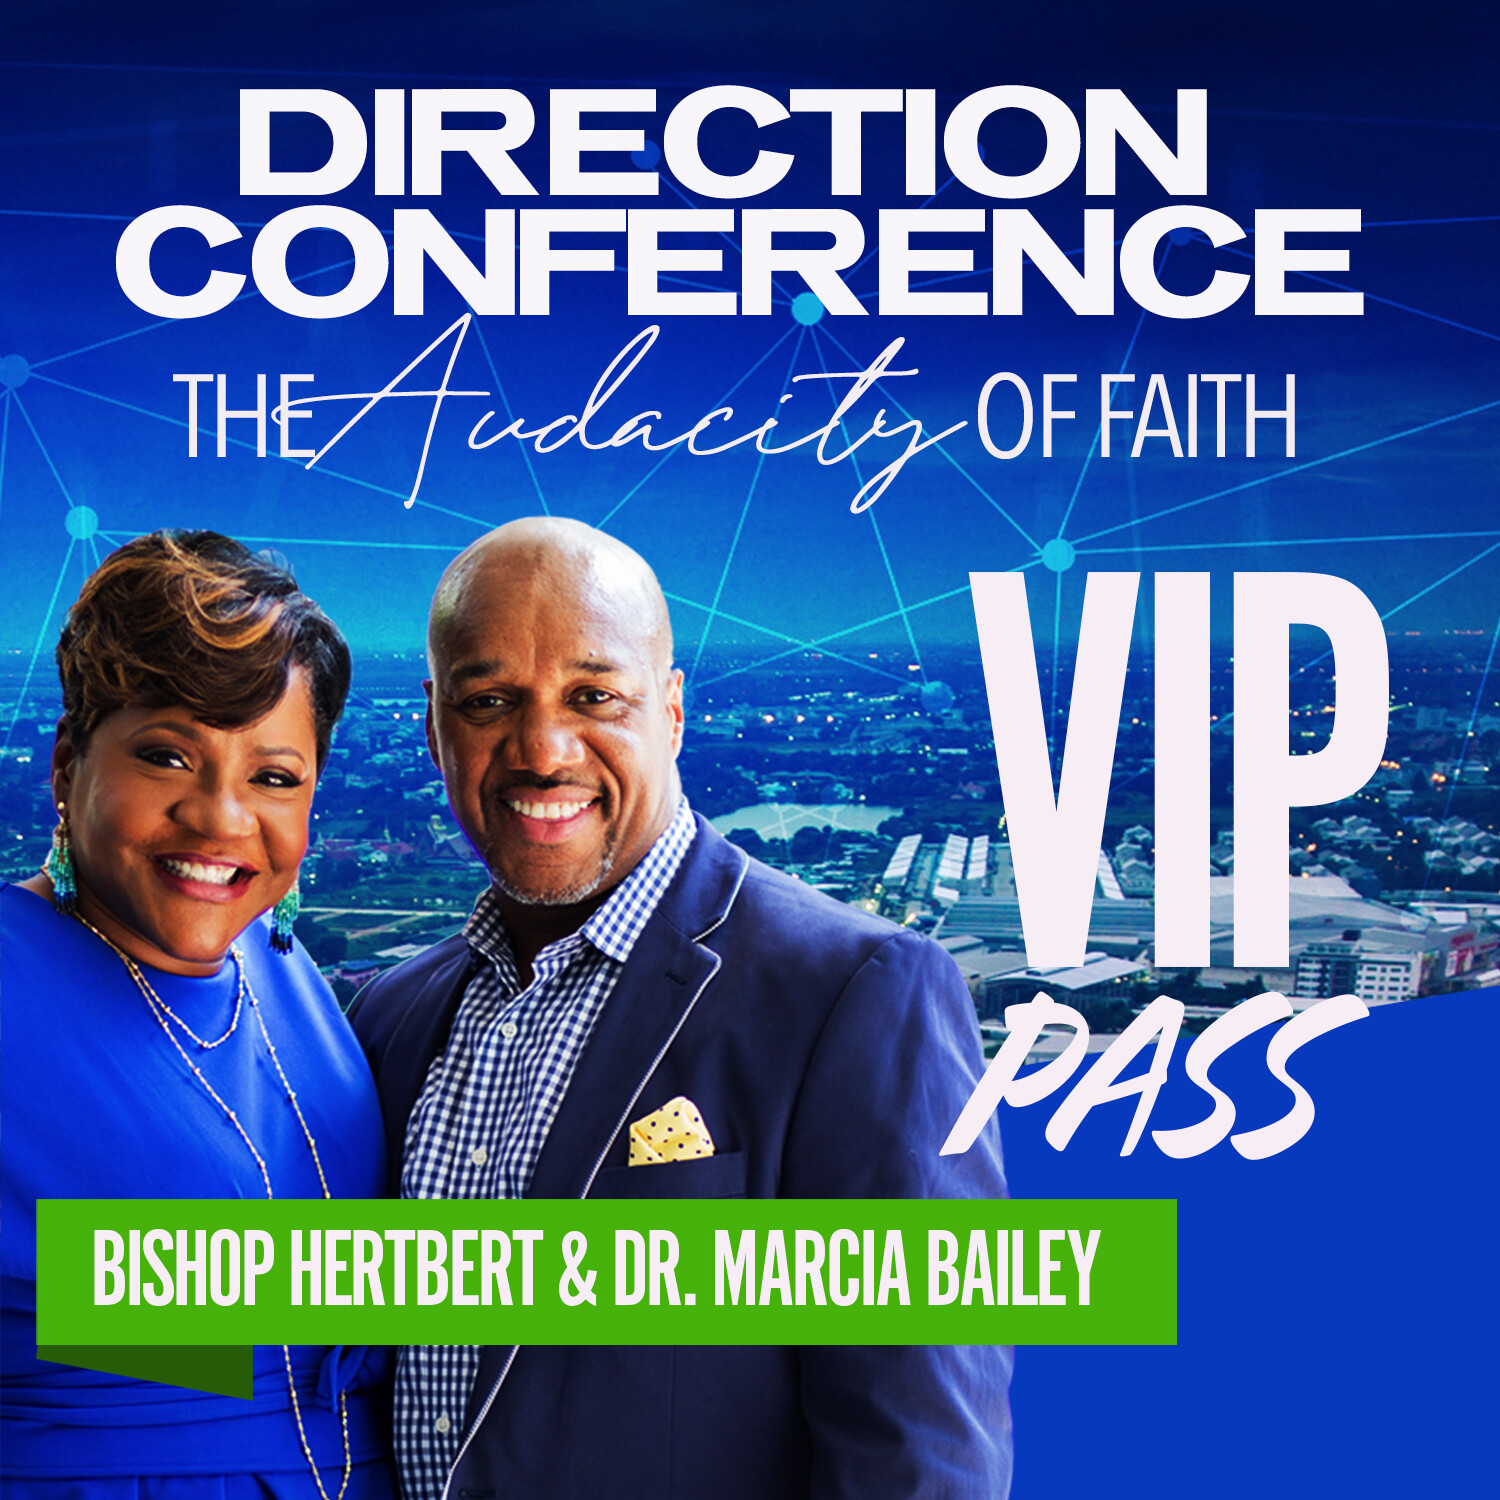 Direction Conference VIP Registration